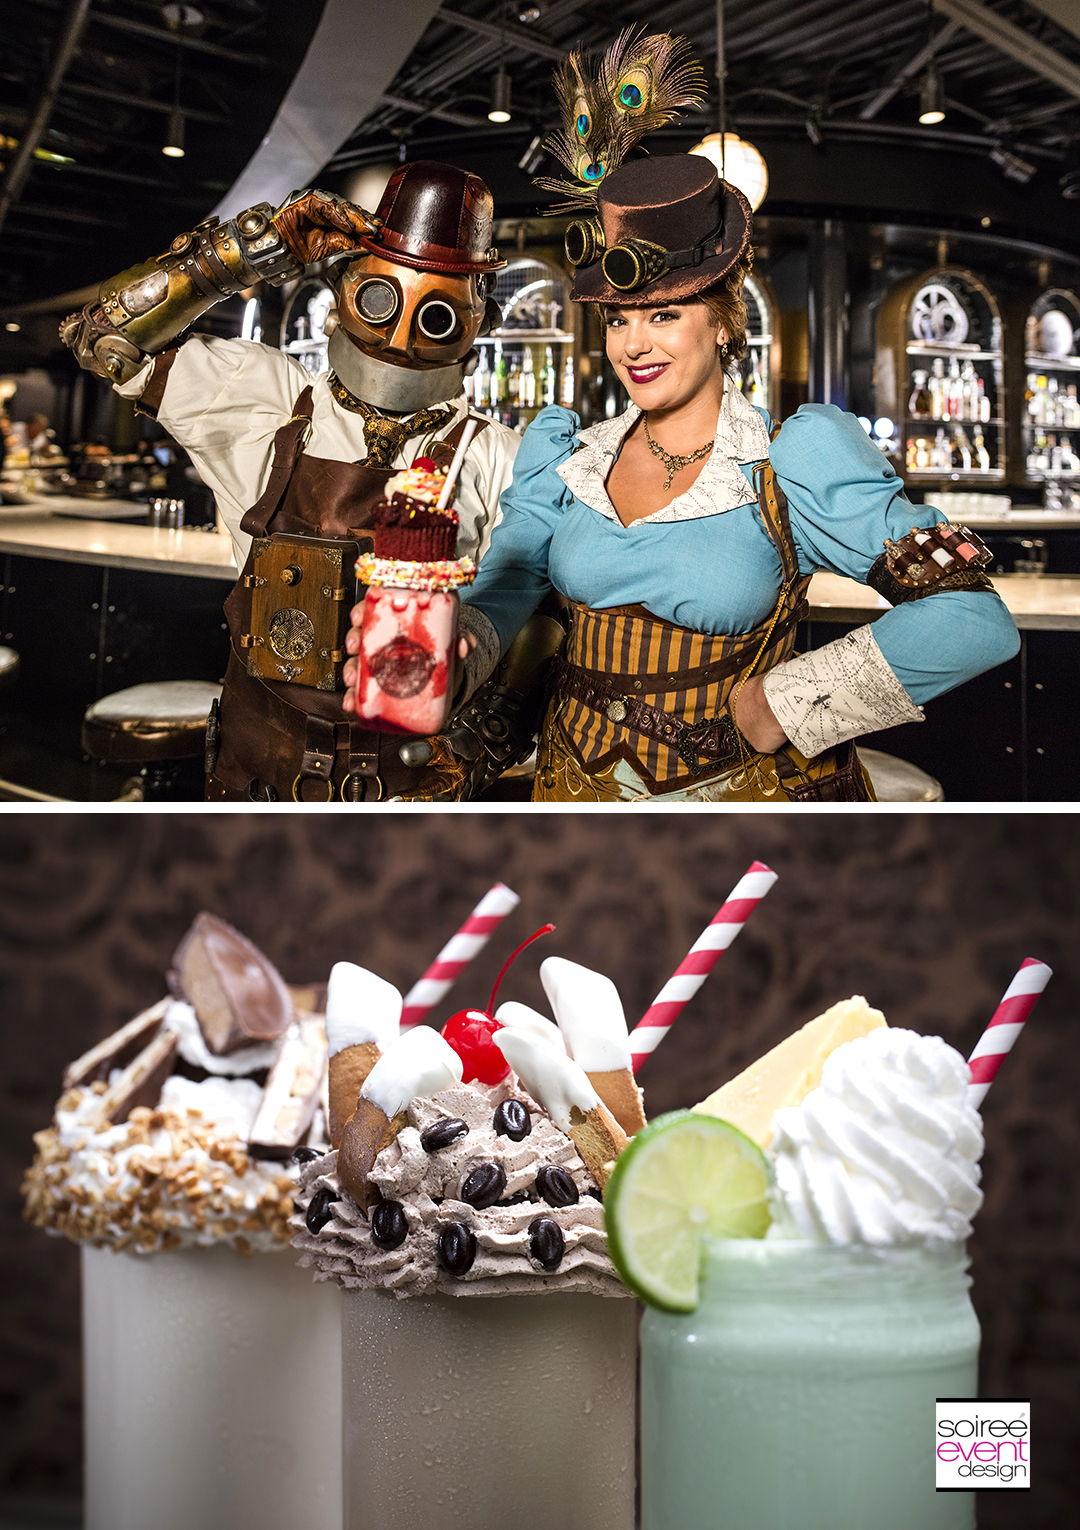 "Universal Orlando's newest immersive dining experience – The Toothsome Chocolate Emporium & Savory Feast Kitchen – is now officially open at Universal CityWalk with a diverse, radically innovative menu that also raises the art of chocolate to an entirely new level. The Toothsome Chocolate Emporium is unlike anything ever created at Universal Orlando. The 19th Century Steampunk-themed restaurant offers guests a unique dining experience that offers something for everyone. Guests can enjoy everything from twists on classic steaks, seafood and pasta entrees to gourmet burgers and sandwiches to an ""all-day brunch"" menu featuring French toast, crepes and more. Guests can also satisfy their sweet tooth with an incredible dessert selection that includes artisan milkshakes topped with delicious items such as Key Lime Pie, Red Velvet cupcake and chocolate-covered bacon – as well as a variety of sundaes and additional sweet treats that are a chocolate-lovers dream. For more information, visit www.universalorlando.com."